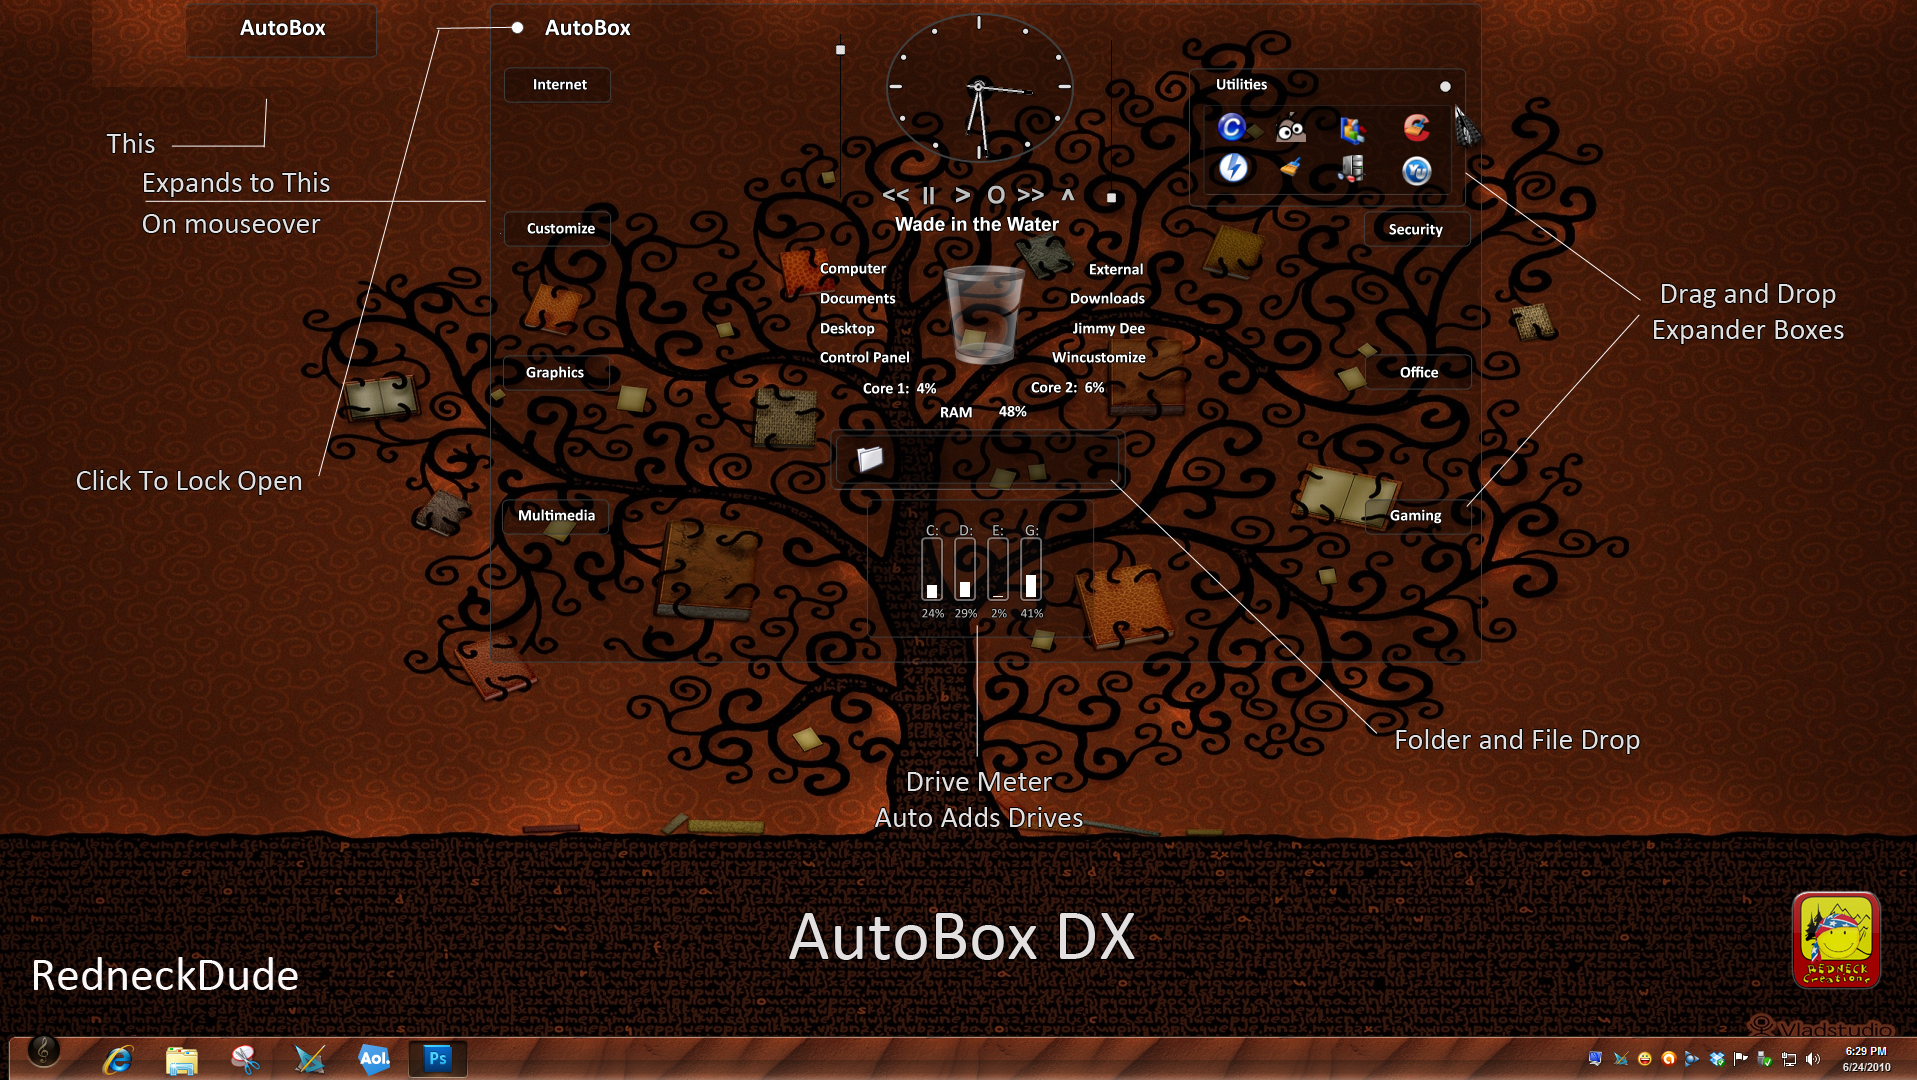 AutoBox DX